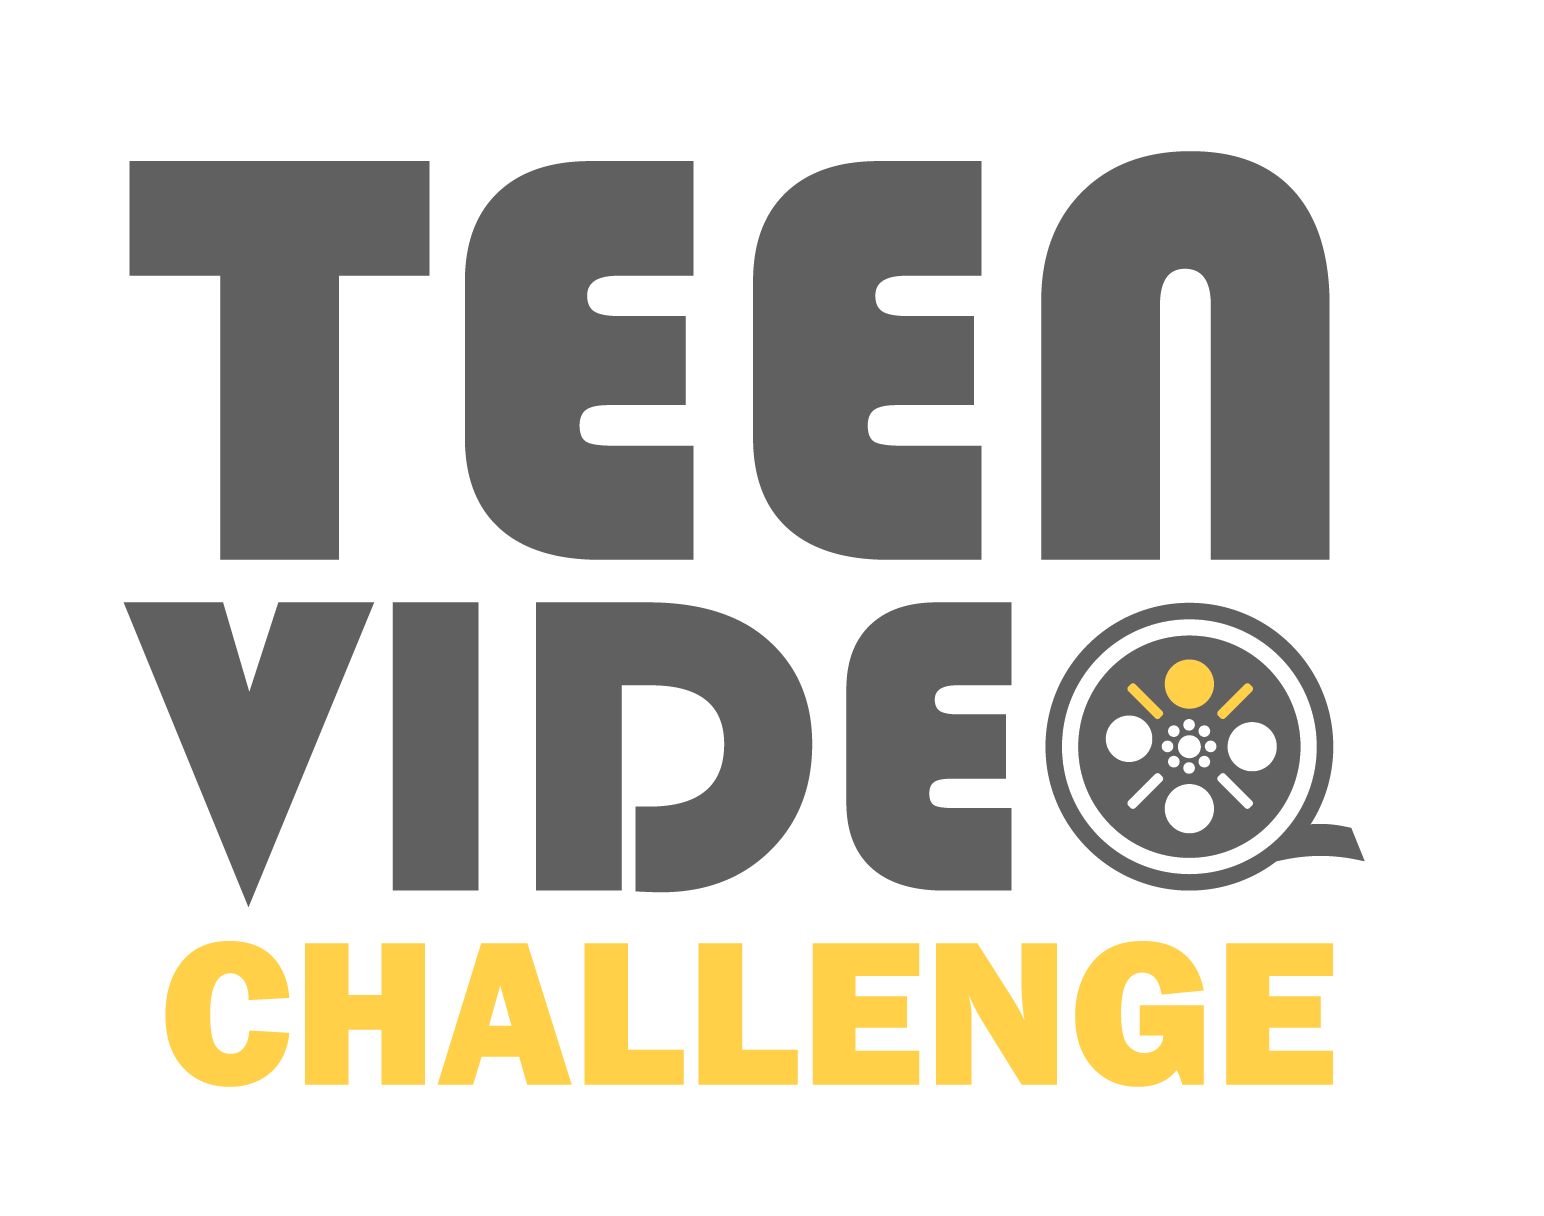 Musique Video 2019 Teen Video Challenge Tvc Collaborative Summer Library Program